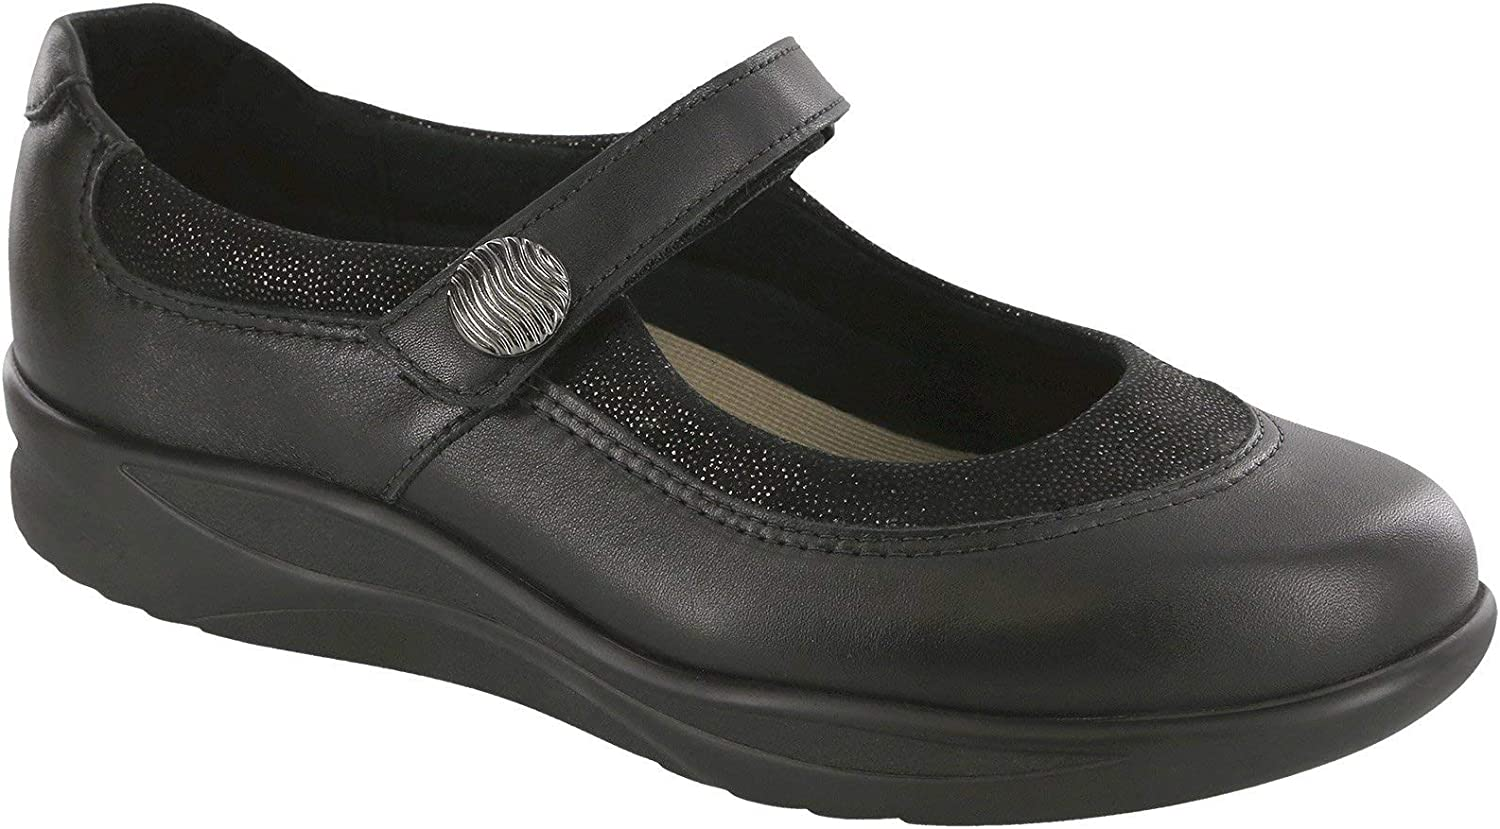 SAS Womens Step Out Leather Closed Toe Mary Jane Flats